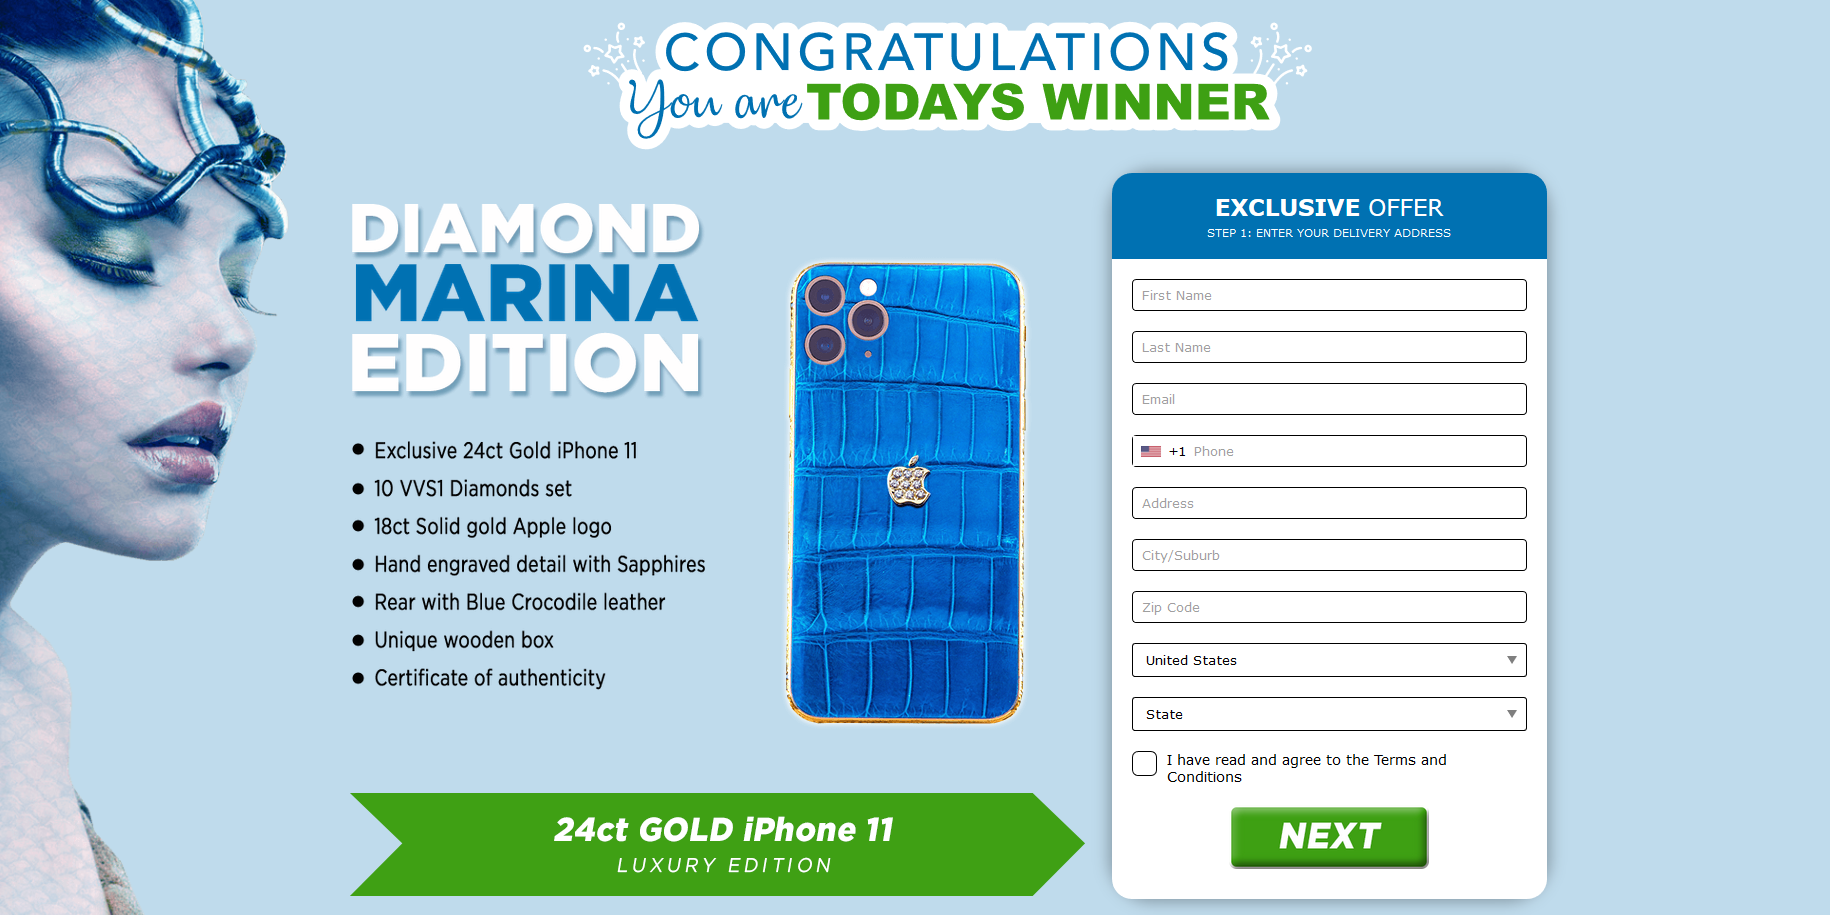 Just Prizes - 24ct Gold iPhone 11 (US)